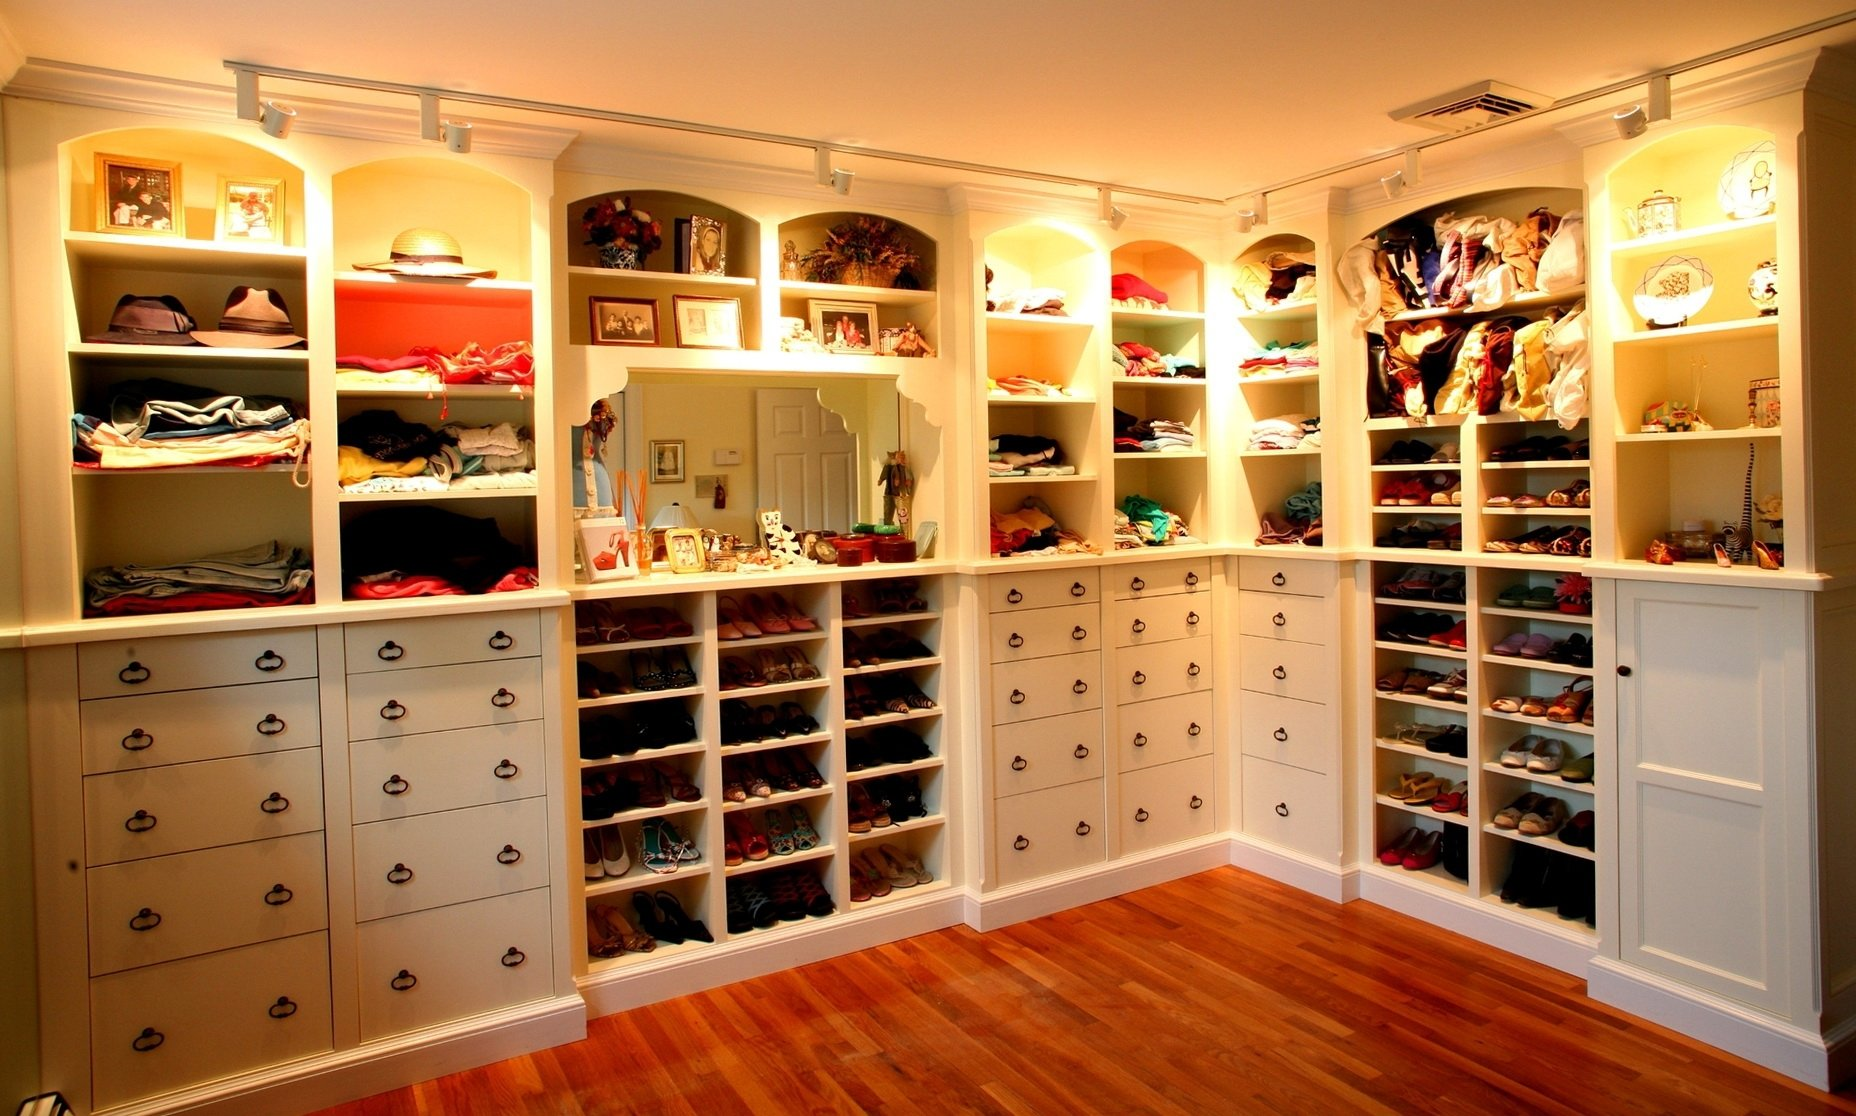 10 Amazing Walk In Closet Design Ideas state closet design small walk as wells as small walk in closet diy 1